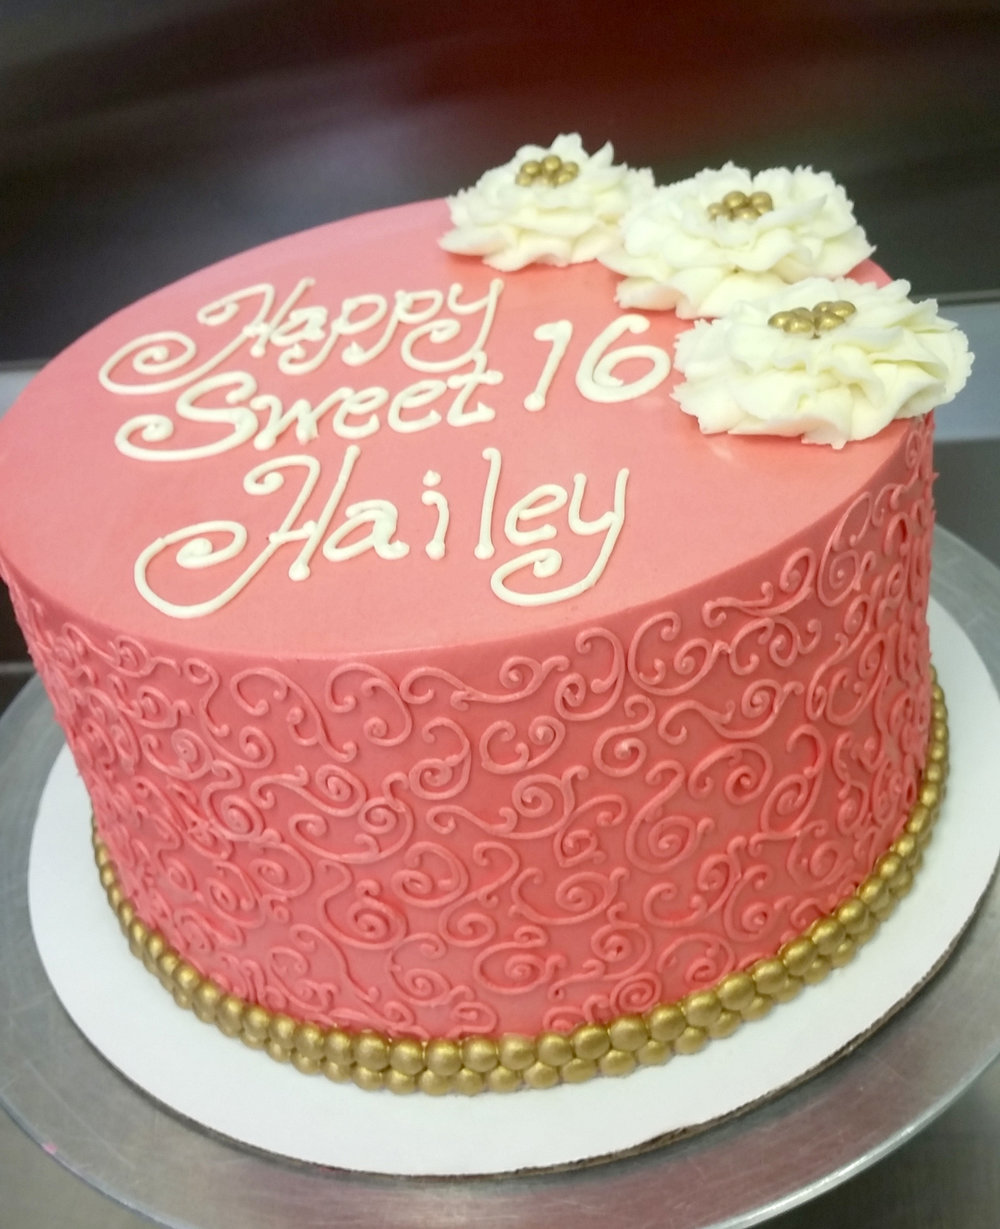 colored scrollwork gold accent cake.jpg